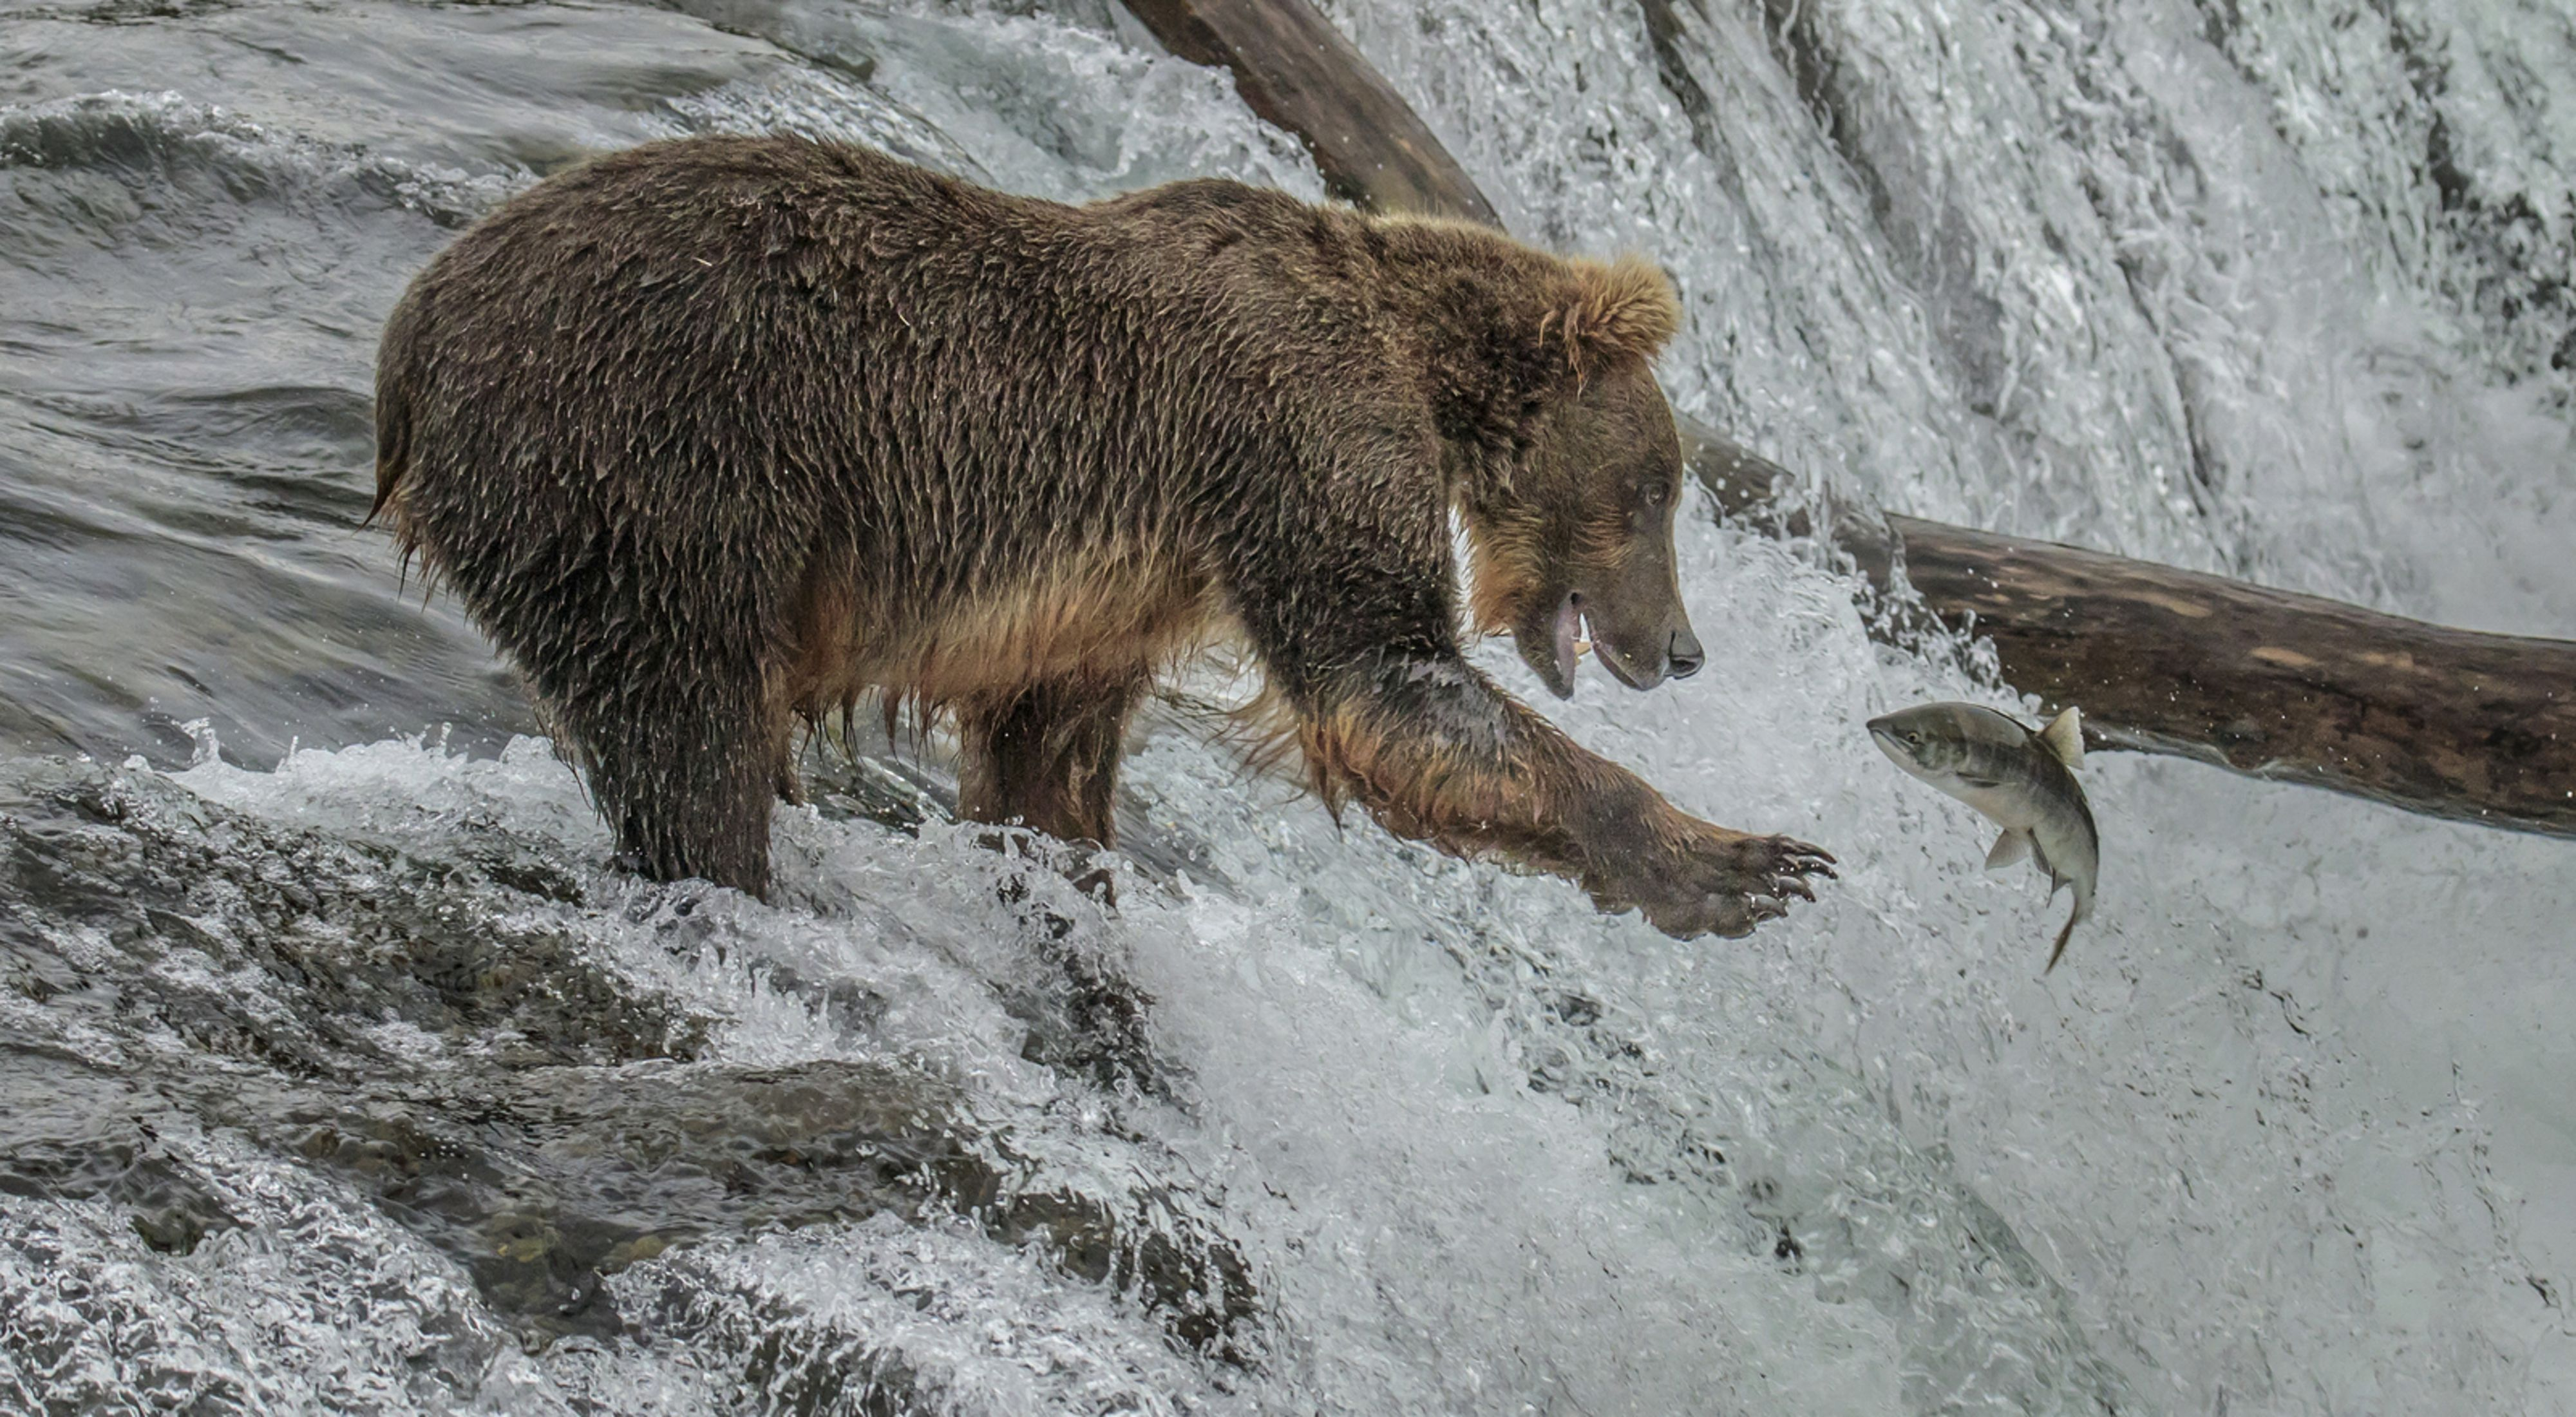 Photo of a grizzly bear in river catching a fish.